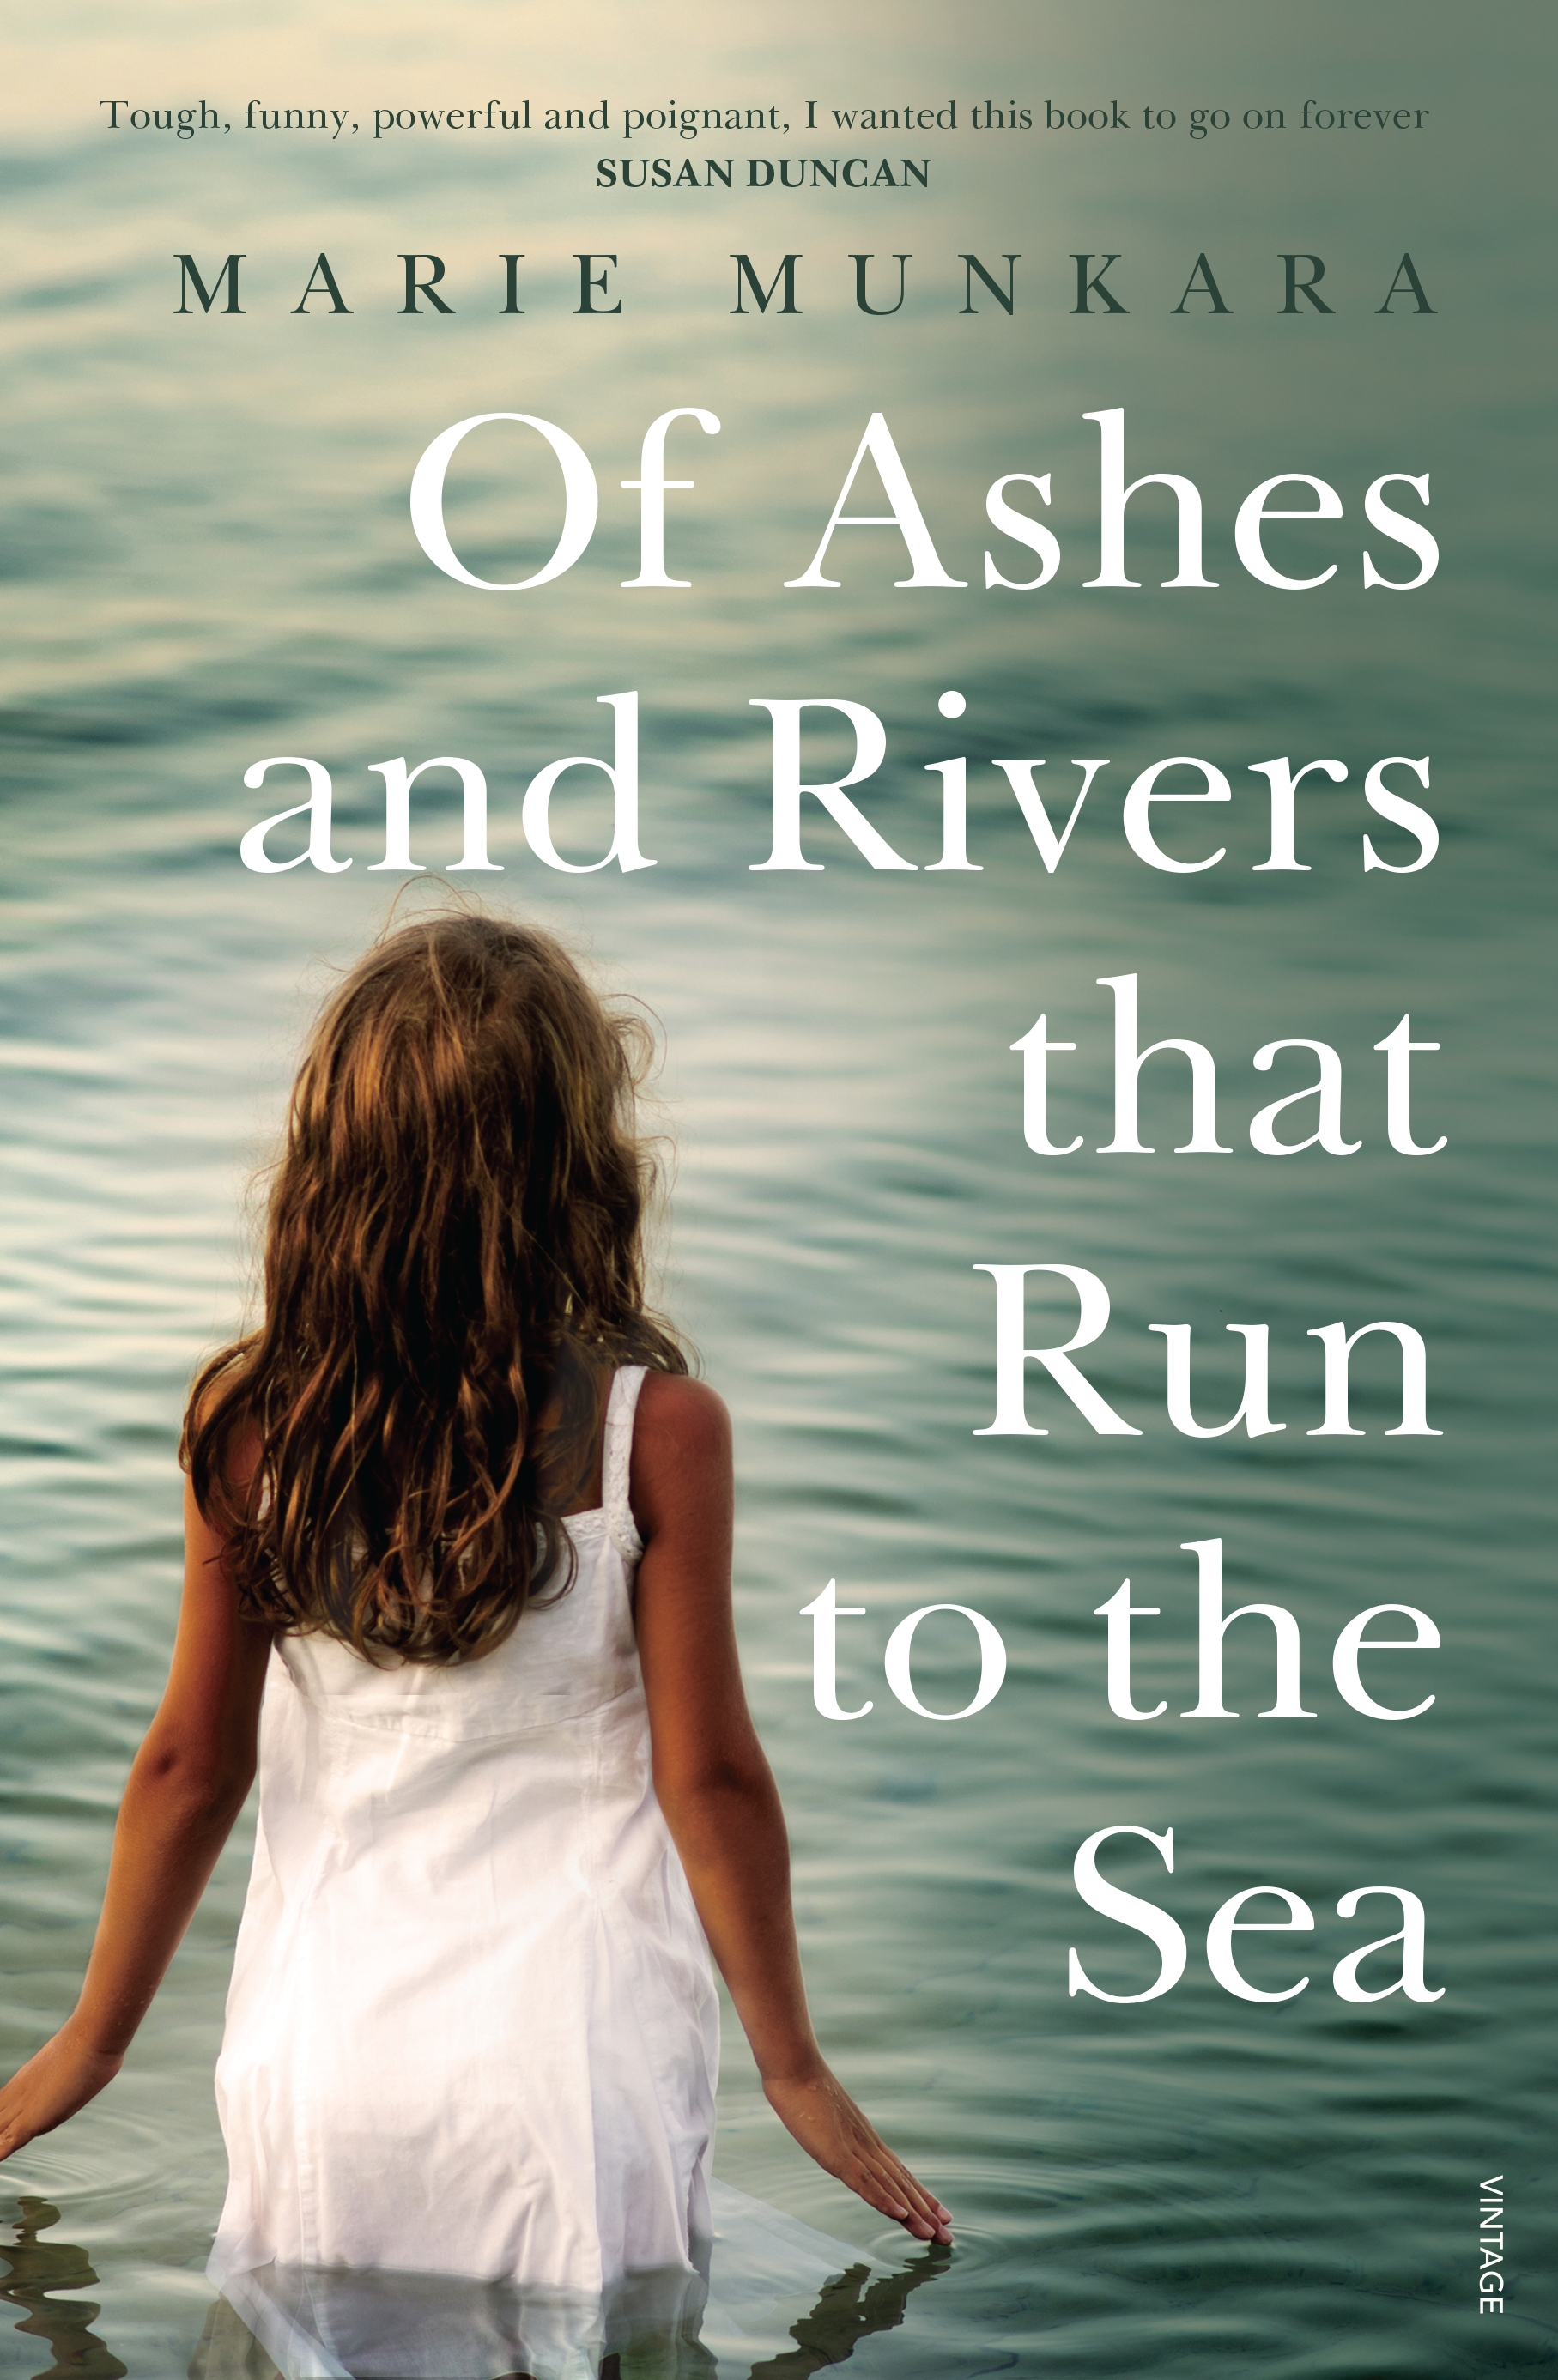 Cover image of 'Of Ashes and Rivers that Run to the Sea' by Marie Munkara